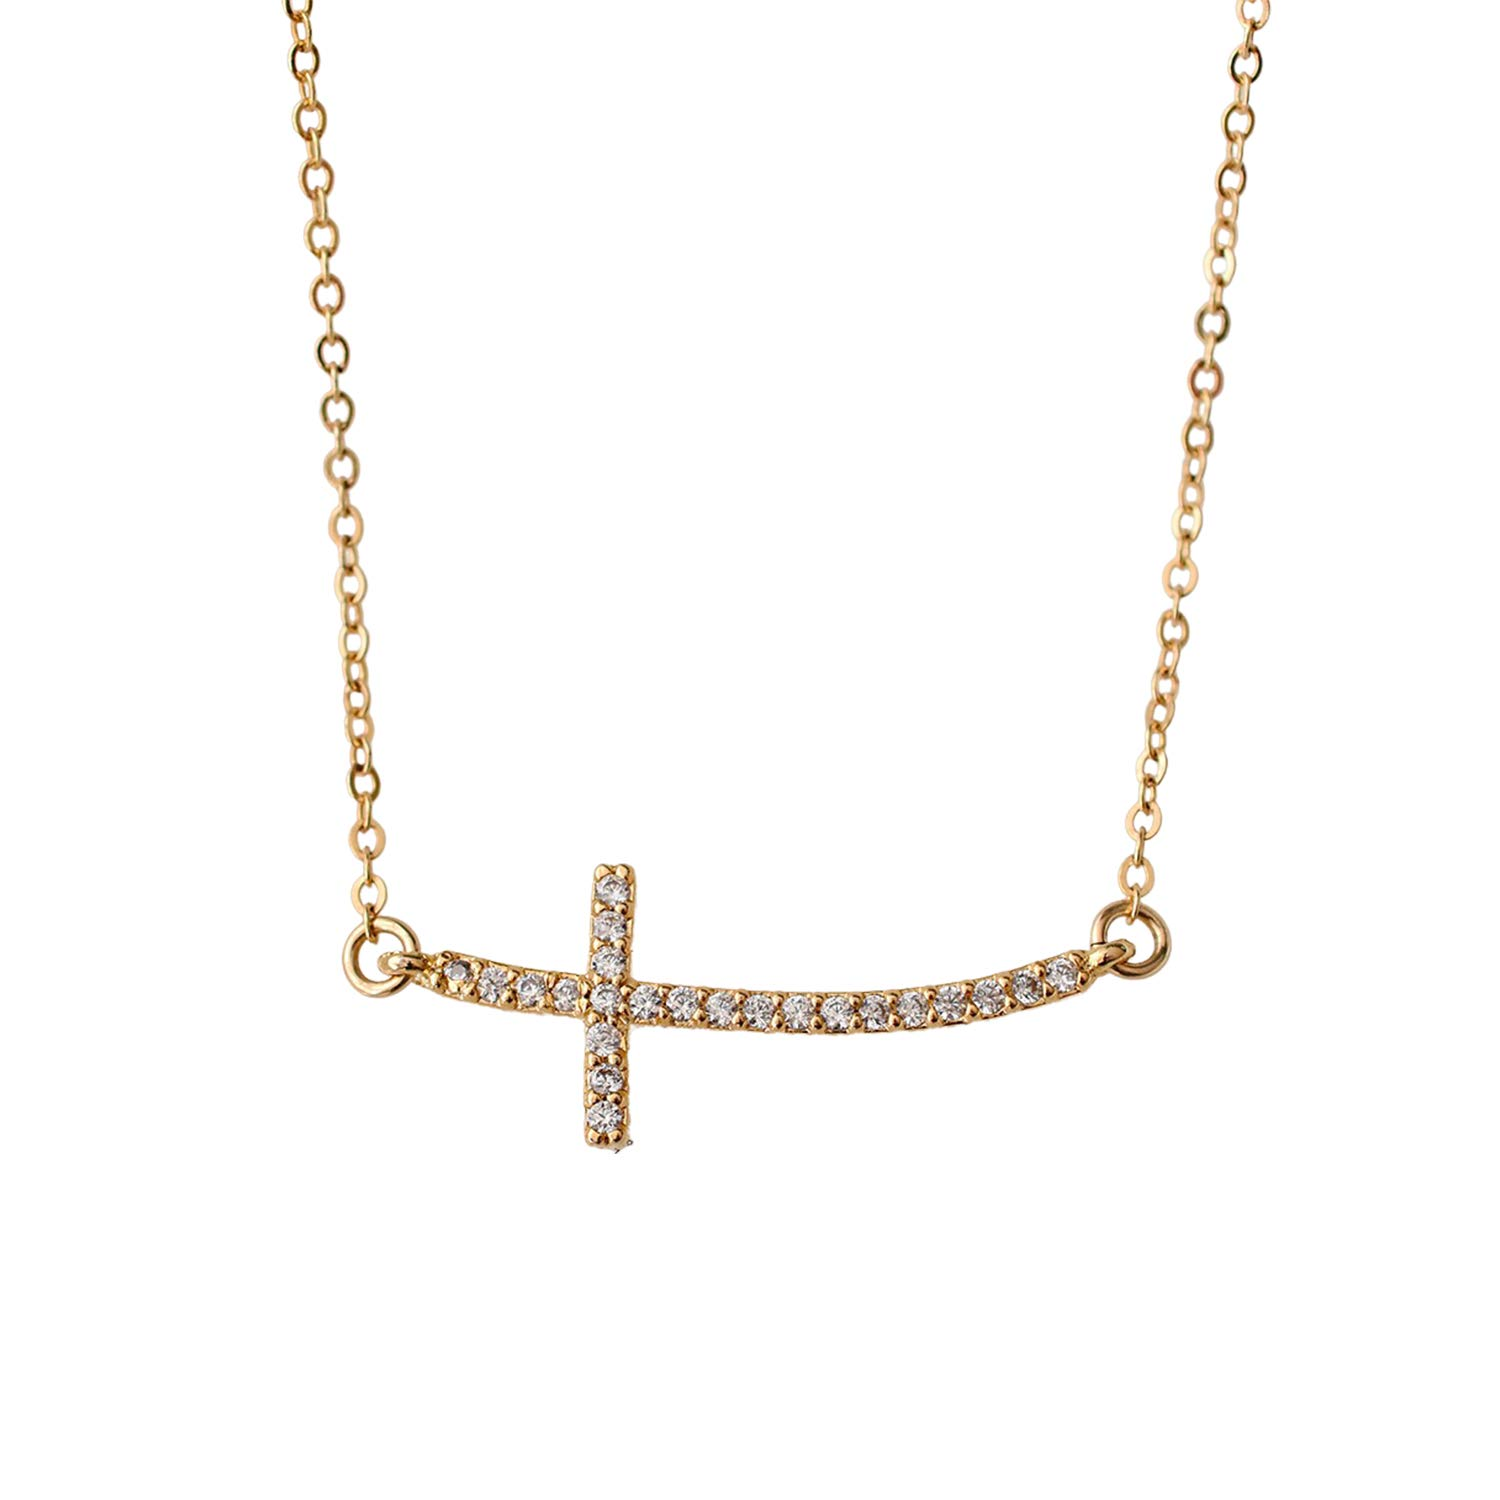 Crystal CZ Sideways Cross Pendant Chain Spring new work Clearance SALE! Limited time! one after another - Necklace 1 Gold-Filled